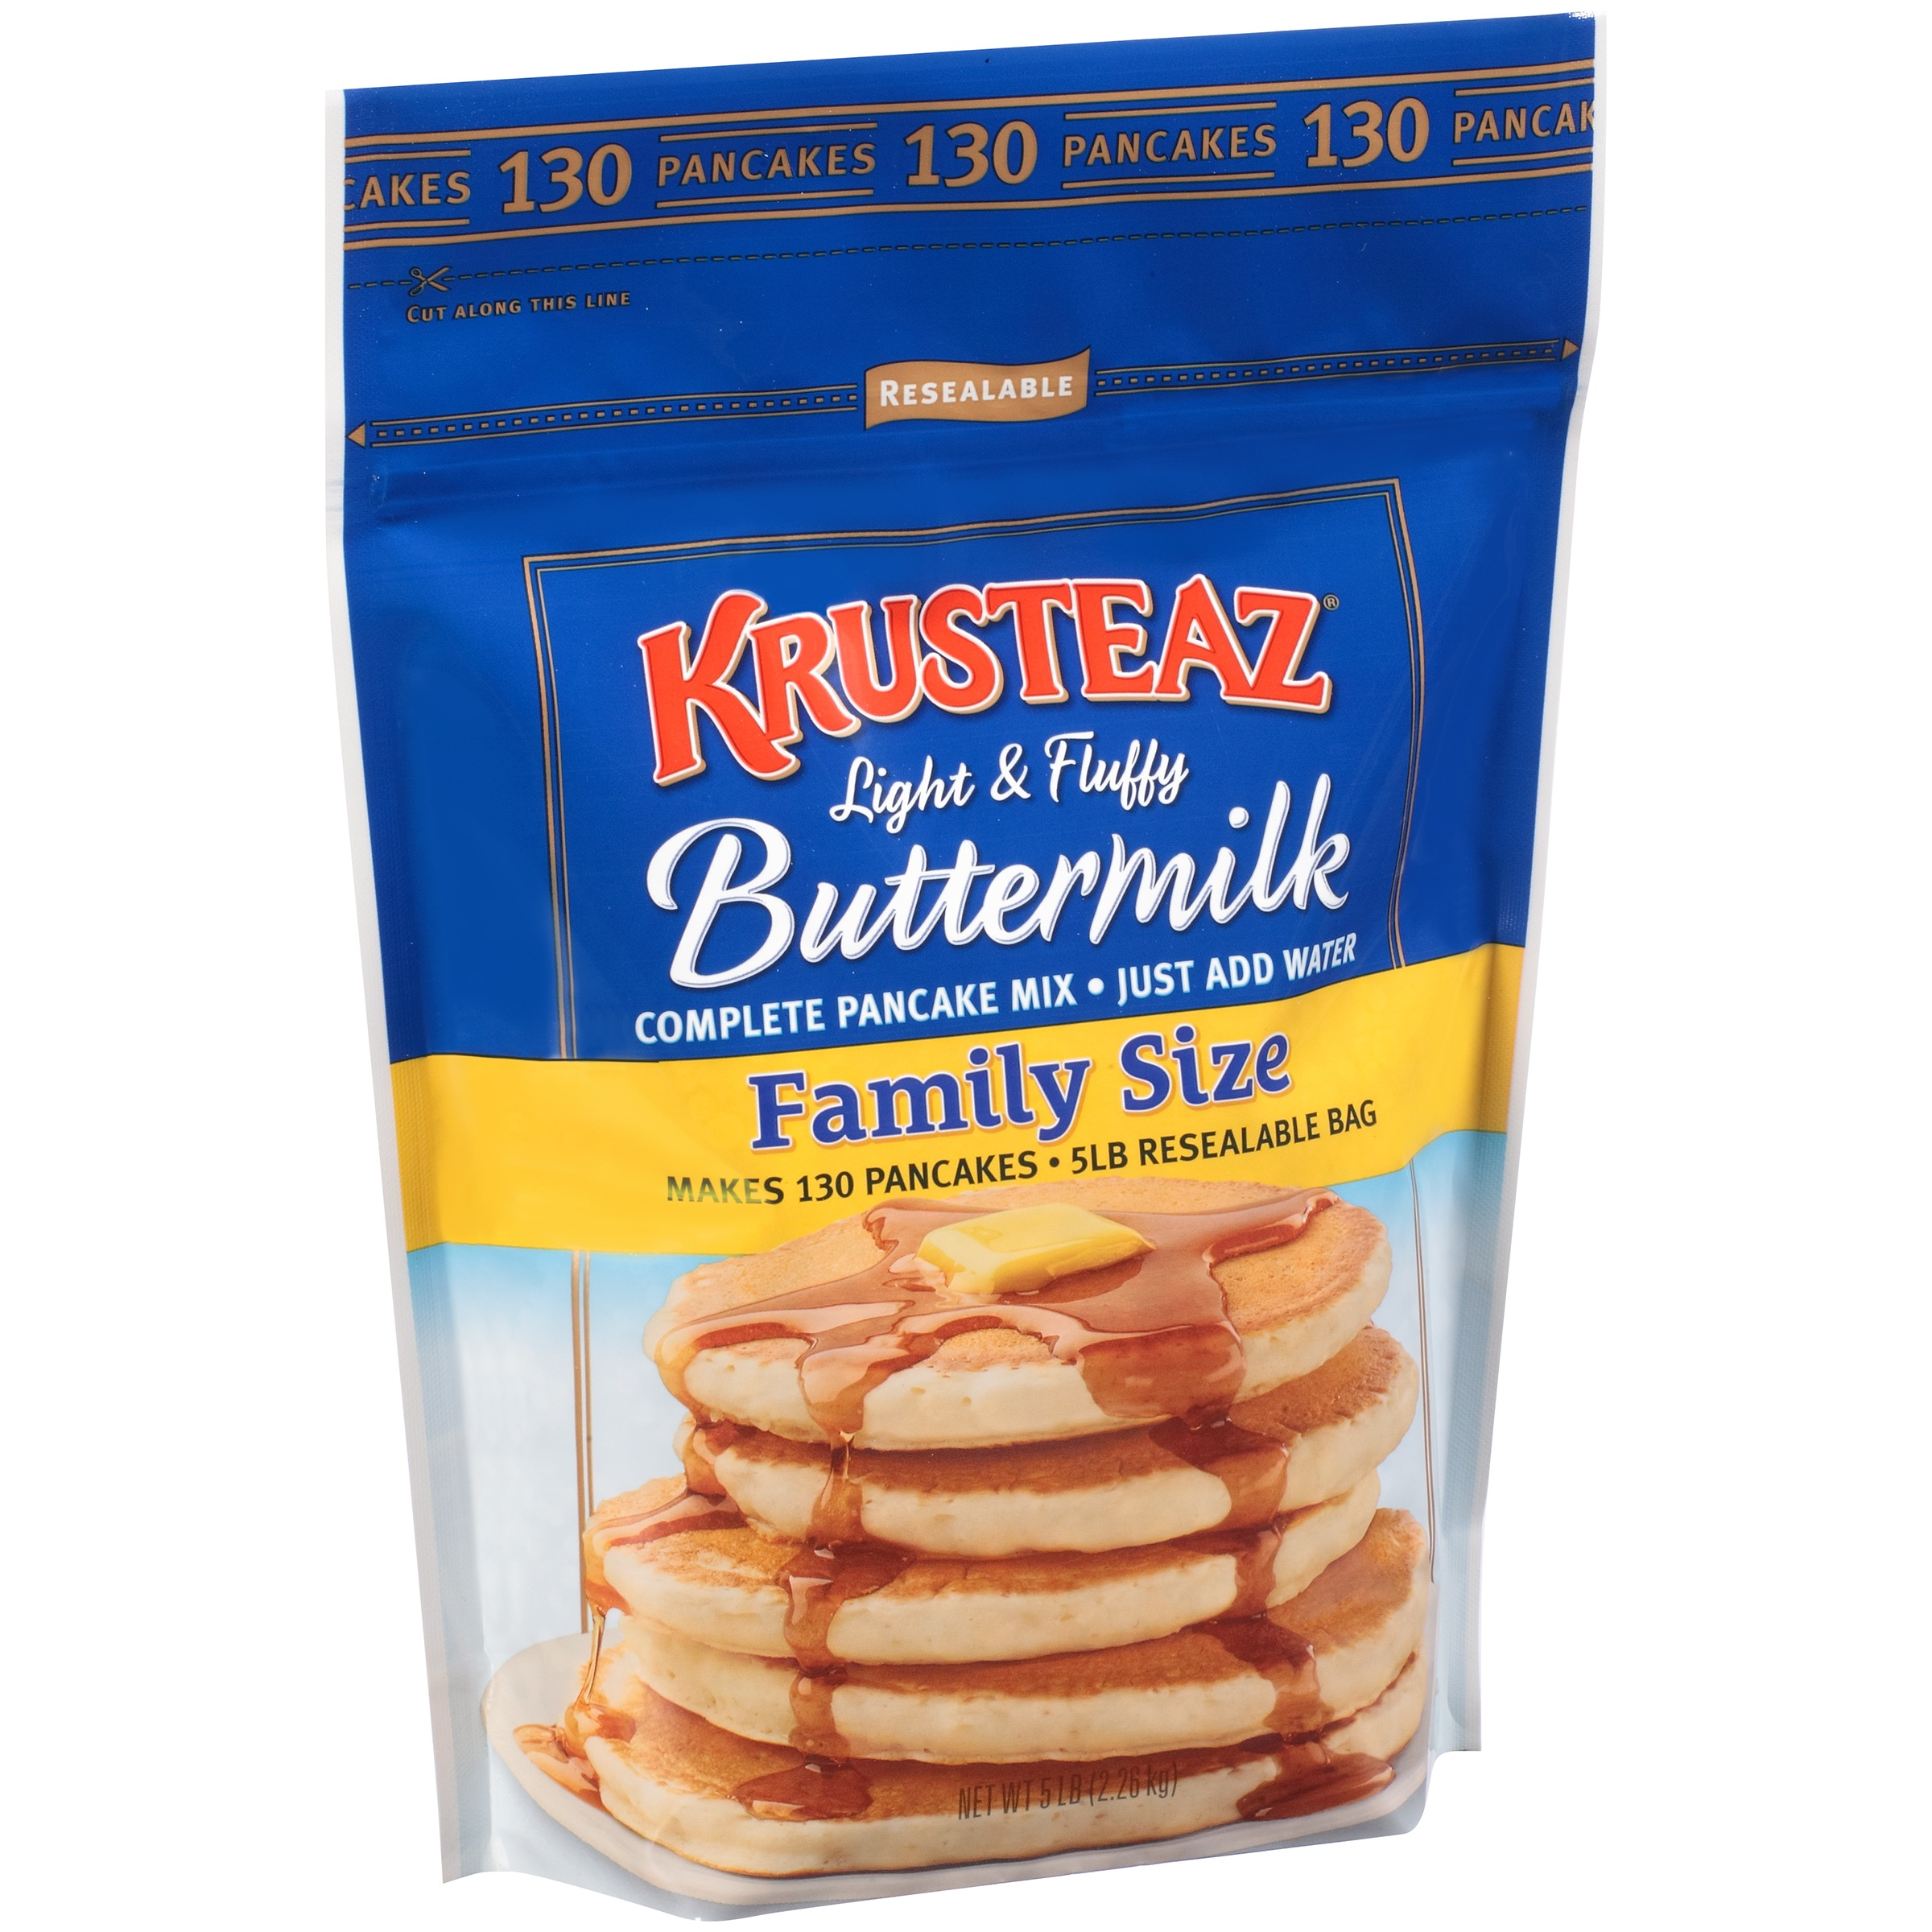 Krusteaz® Buttermilk Complete Pancake Mix Family Size 5 lb. Bag